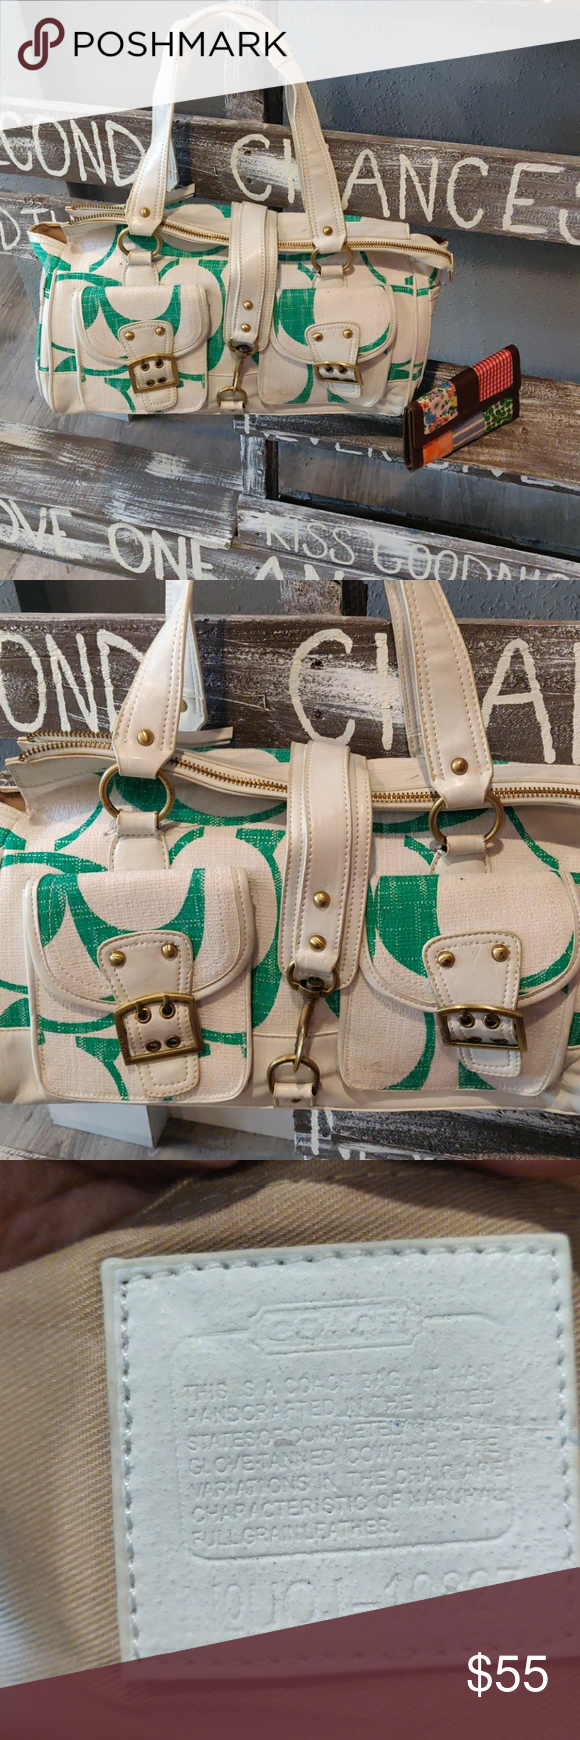 Coach purse and wallet White and green Coach shoulder bag